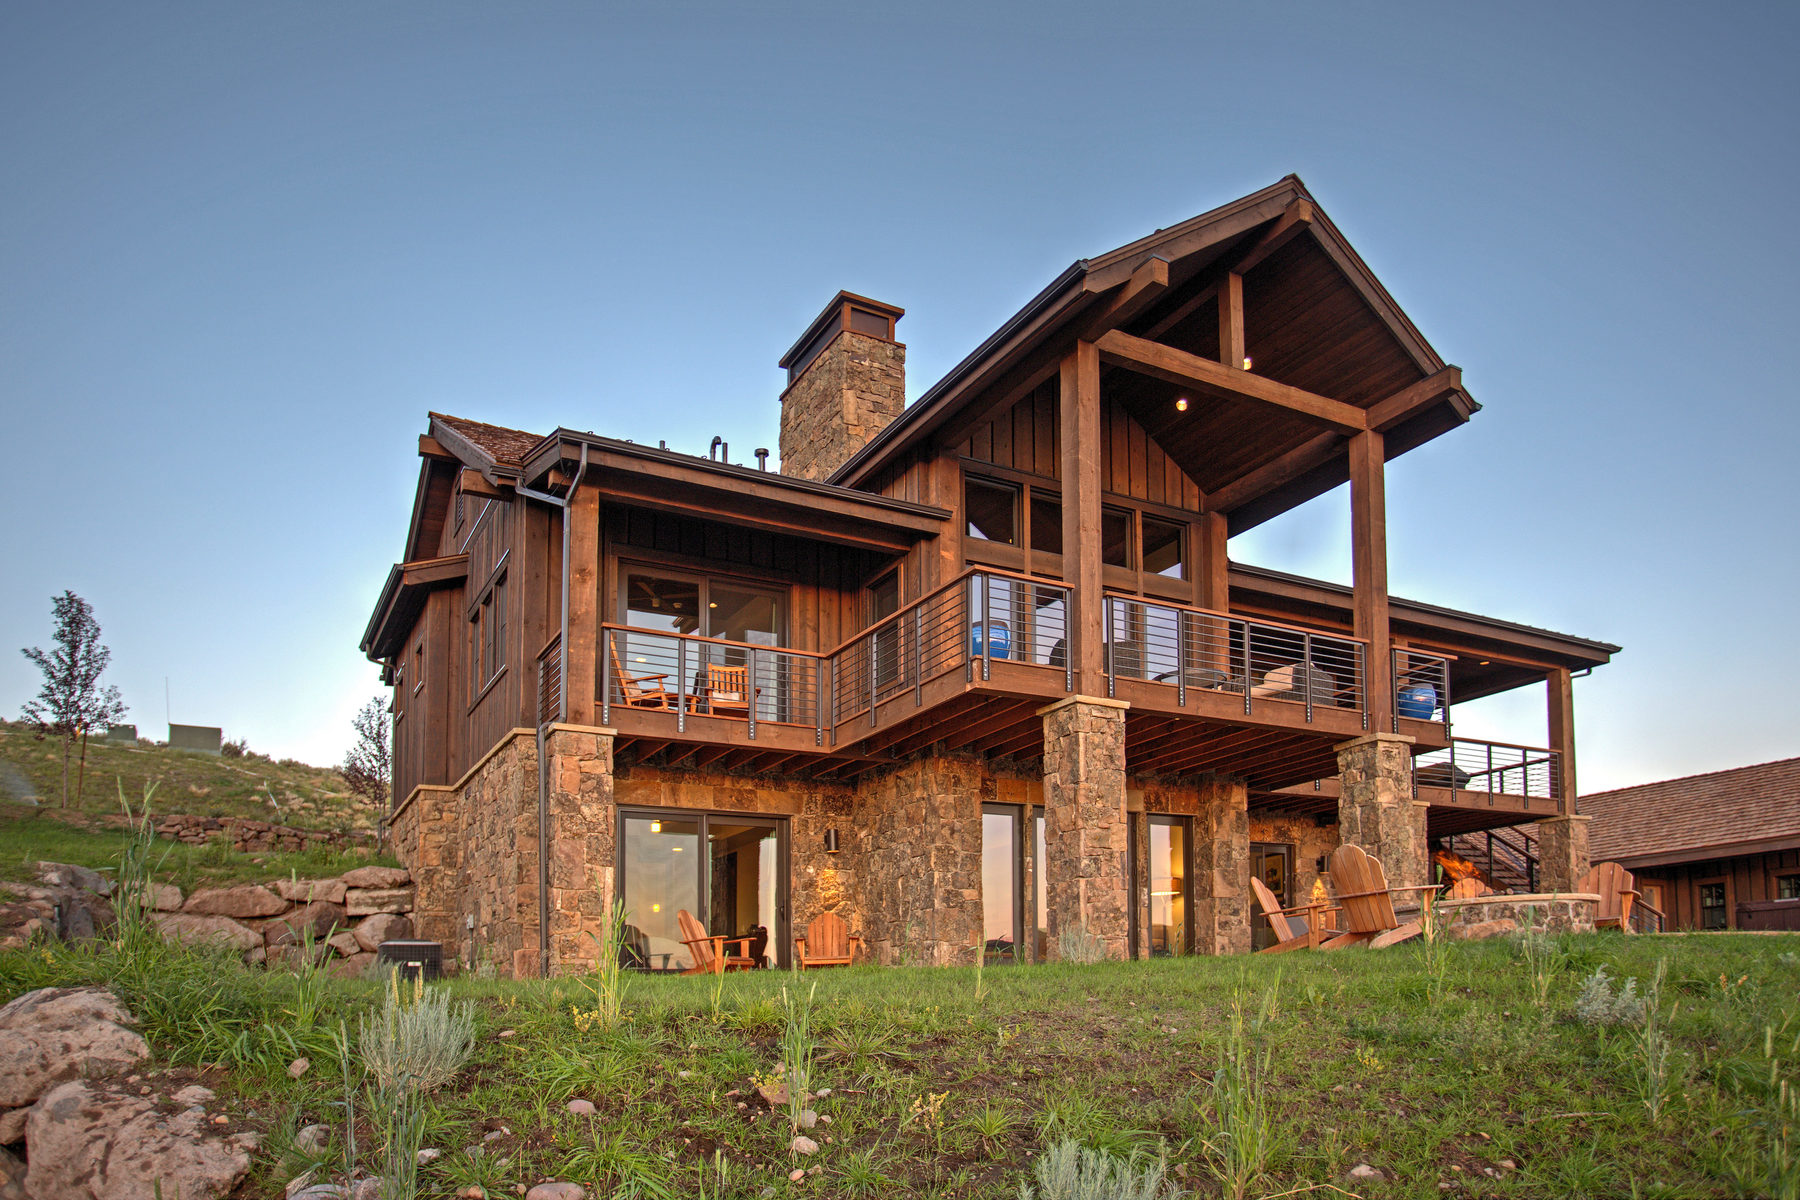 Casa Unifamiliar por un Venta en Juniper Cabin with Spectacular Views 7055 N Rees Jones Way #172 Heber City, Utah, 84032 Estados Unidos